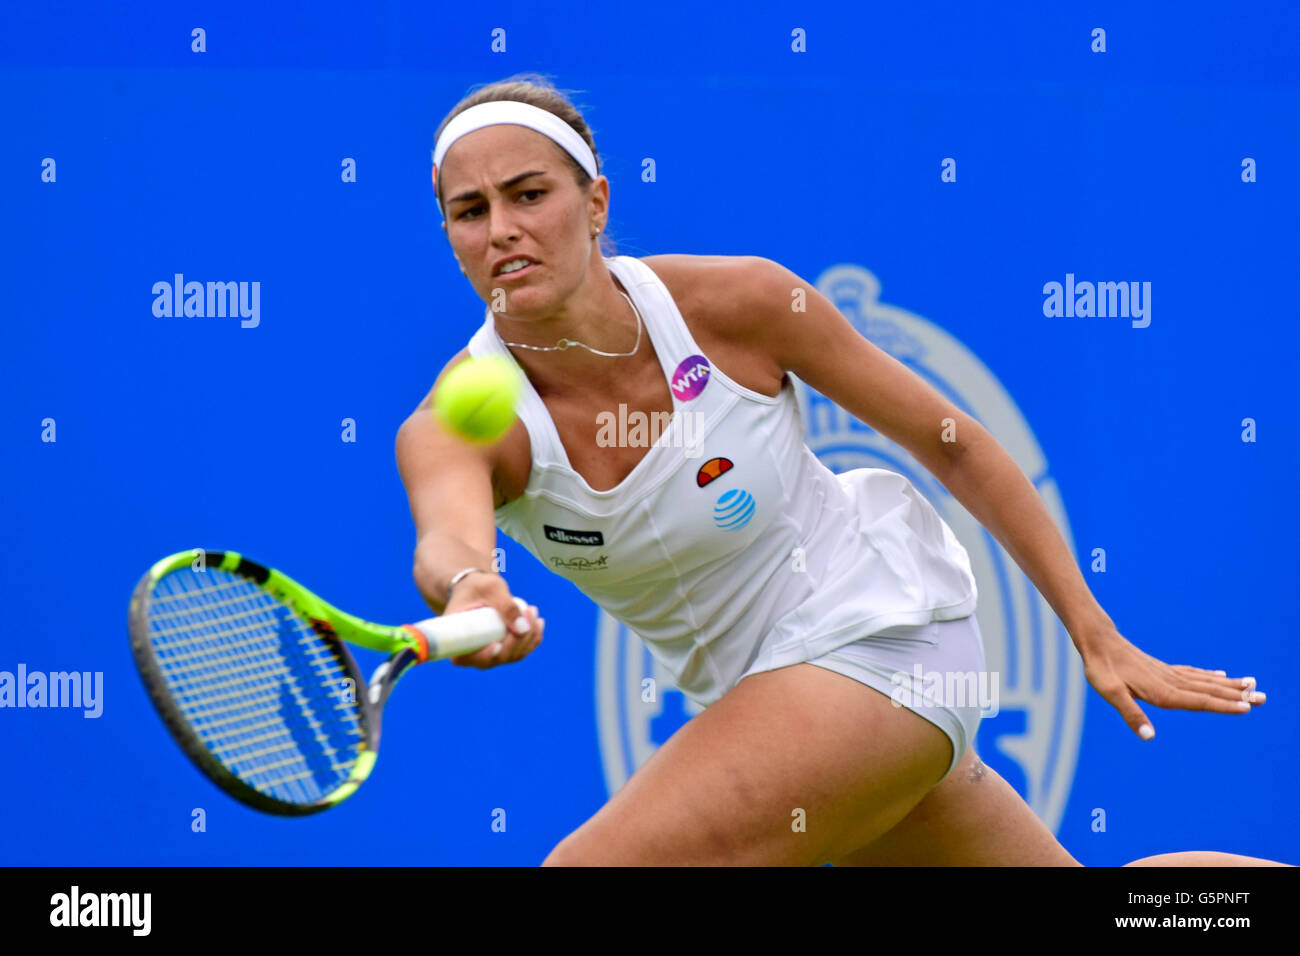 Monica Puig (Puerto Rico) playing at the Aegon International, Eastbourne 2016 - Stock Image